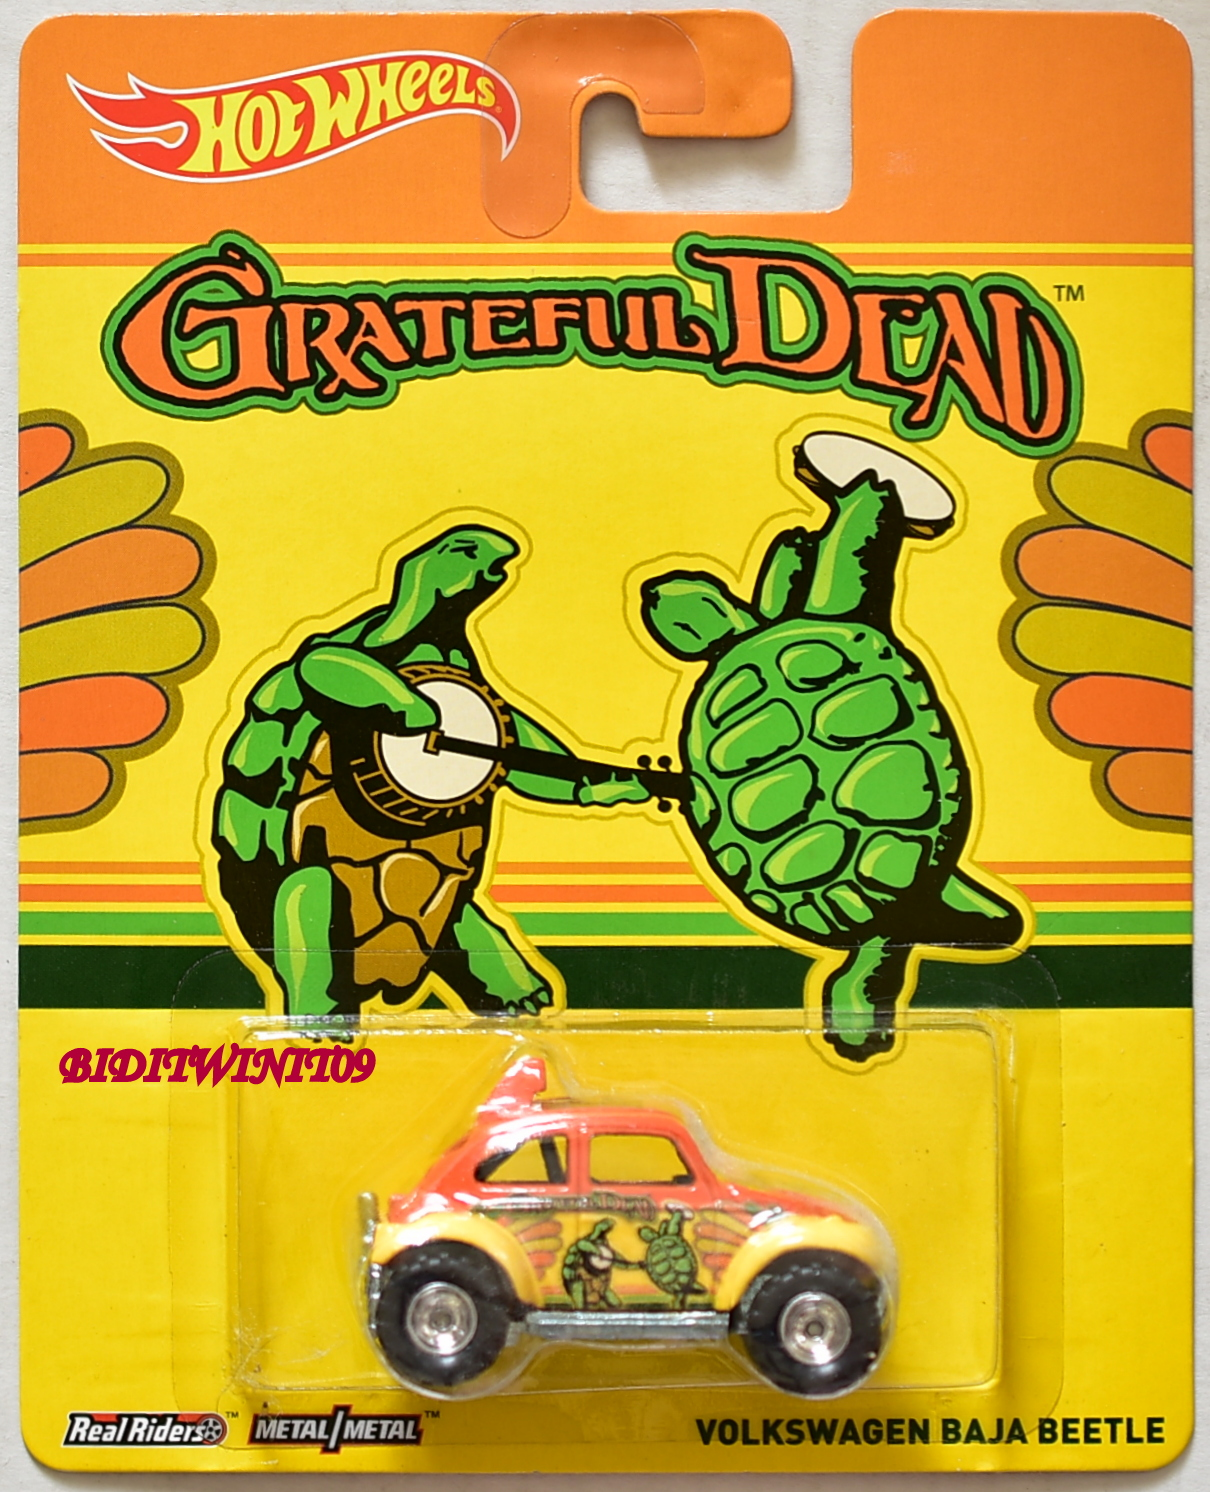 HOT WHEELS POP CULTURE 2014 GRATEFUL DEAD VOLKSWAGEN BAJA BEETLE